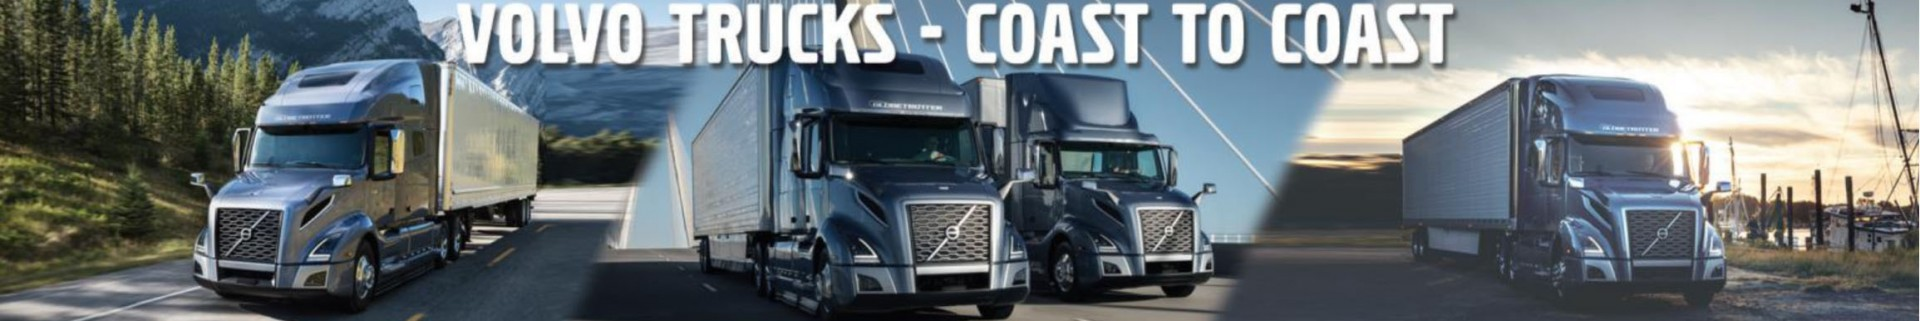 Join 401 Trucksource for the 2018 Volvo Across Canada Truck Tour